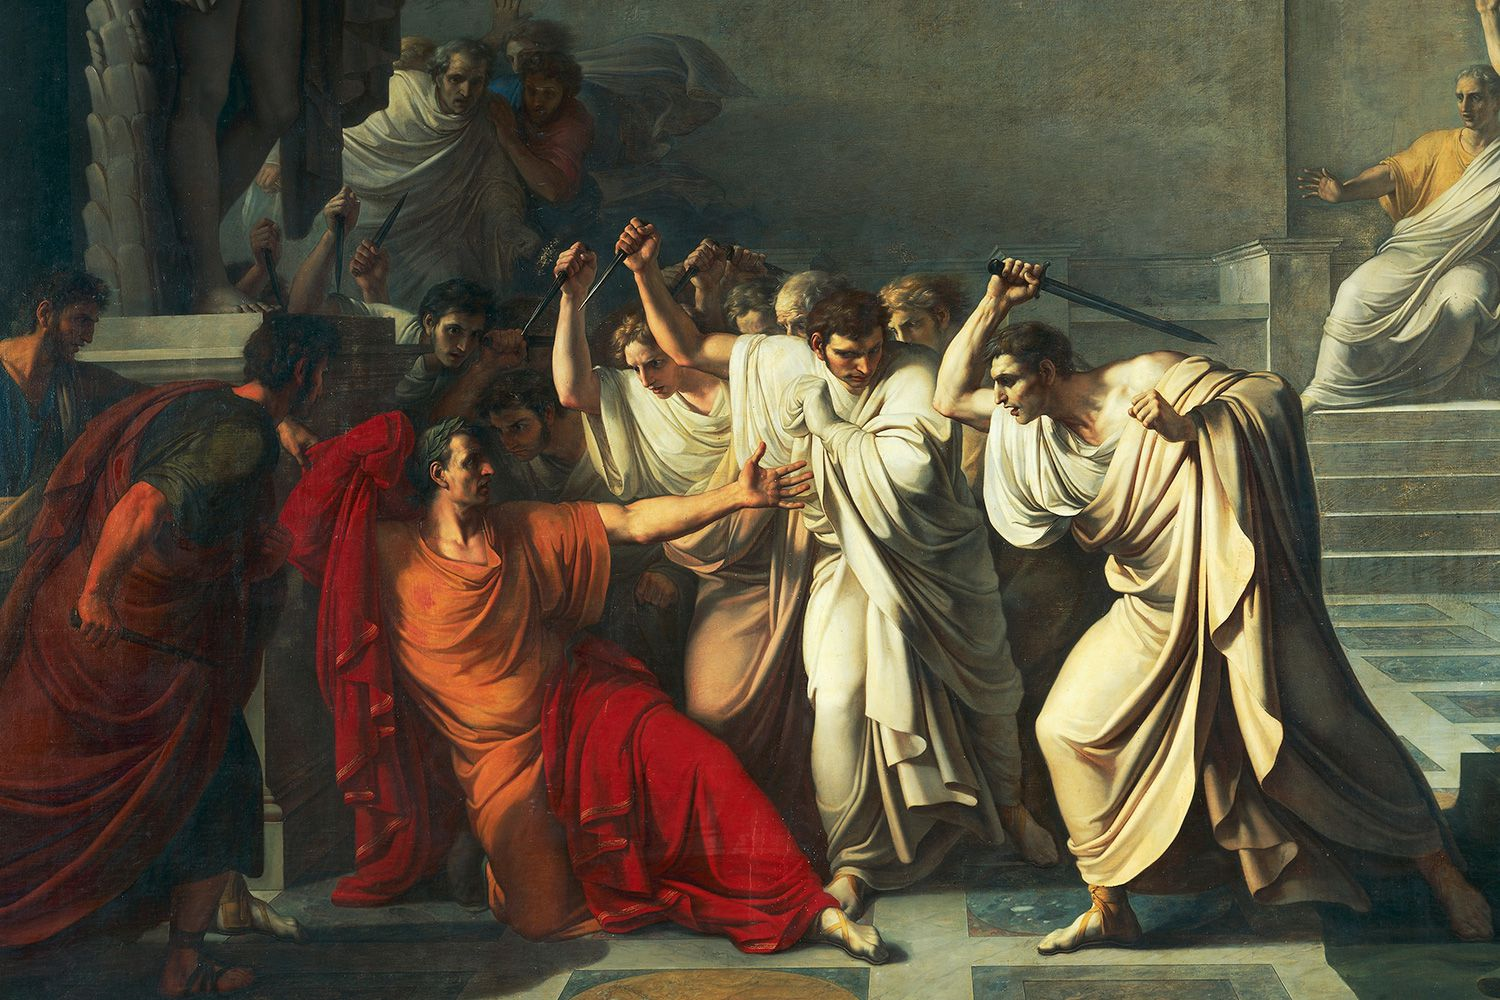 the romans prosper during the time of julius caesar A superb general and politician, julius caesar (c100 bc – 44 bc / reigned 46 – 44 bc) changed the course of roman history although he did not rule for long, he.